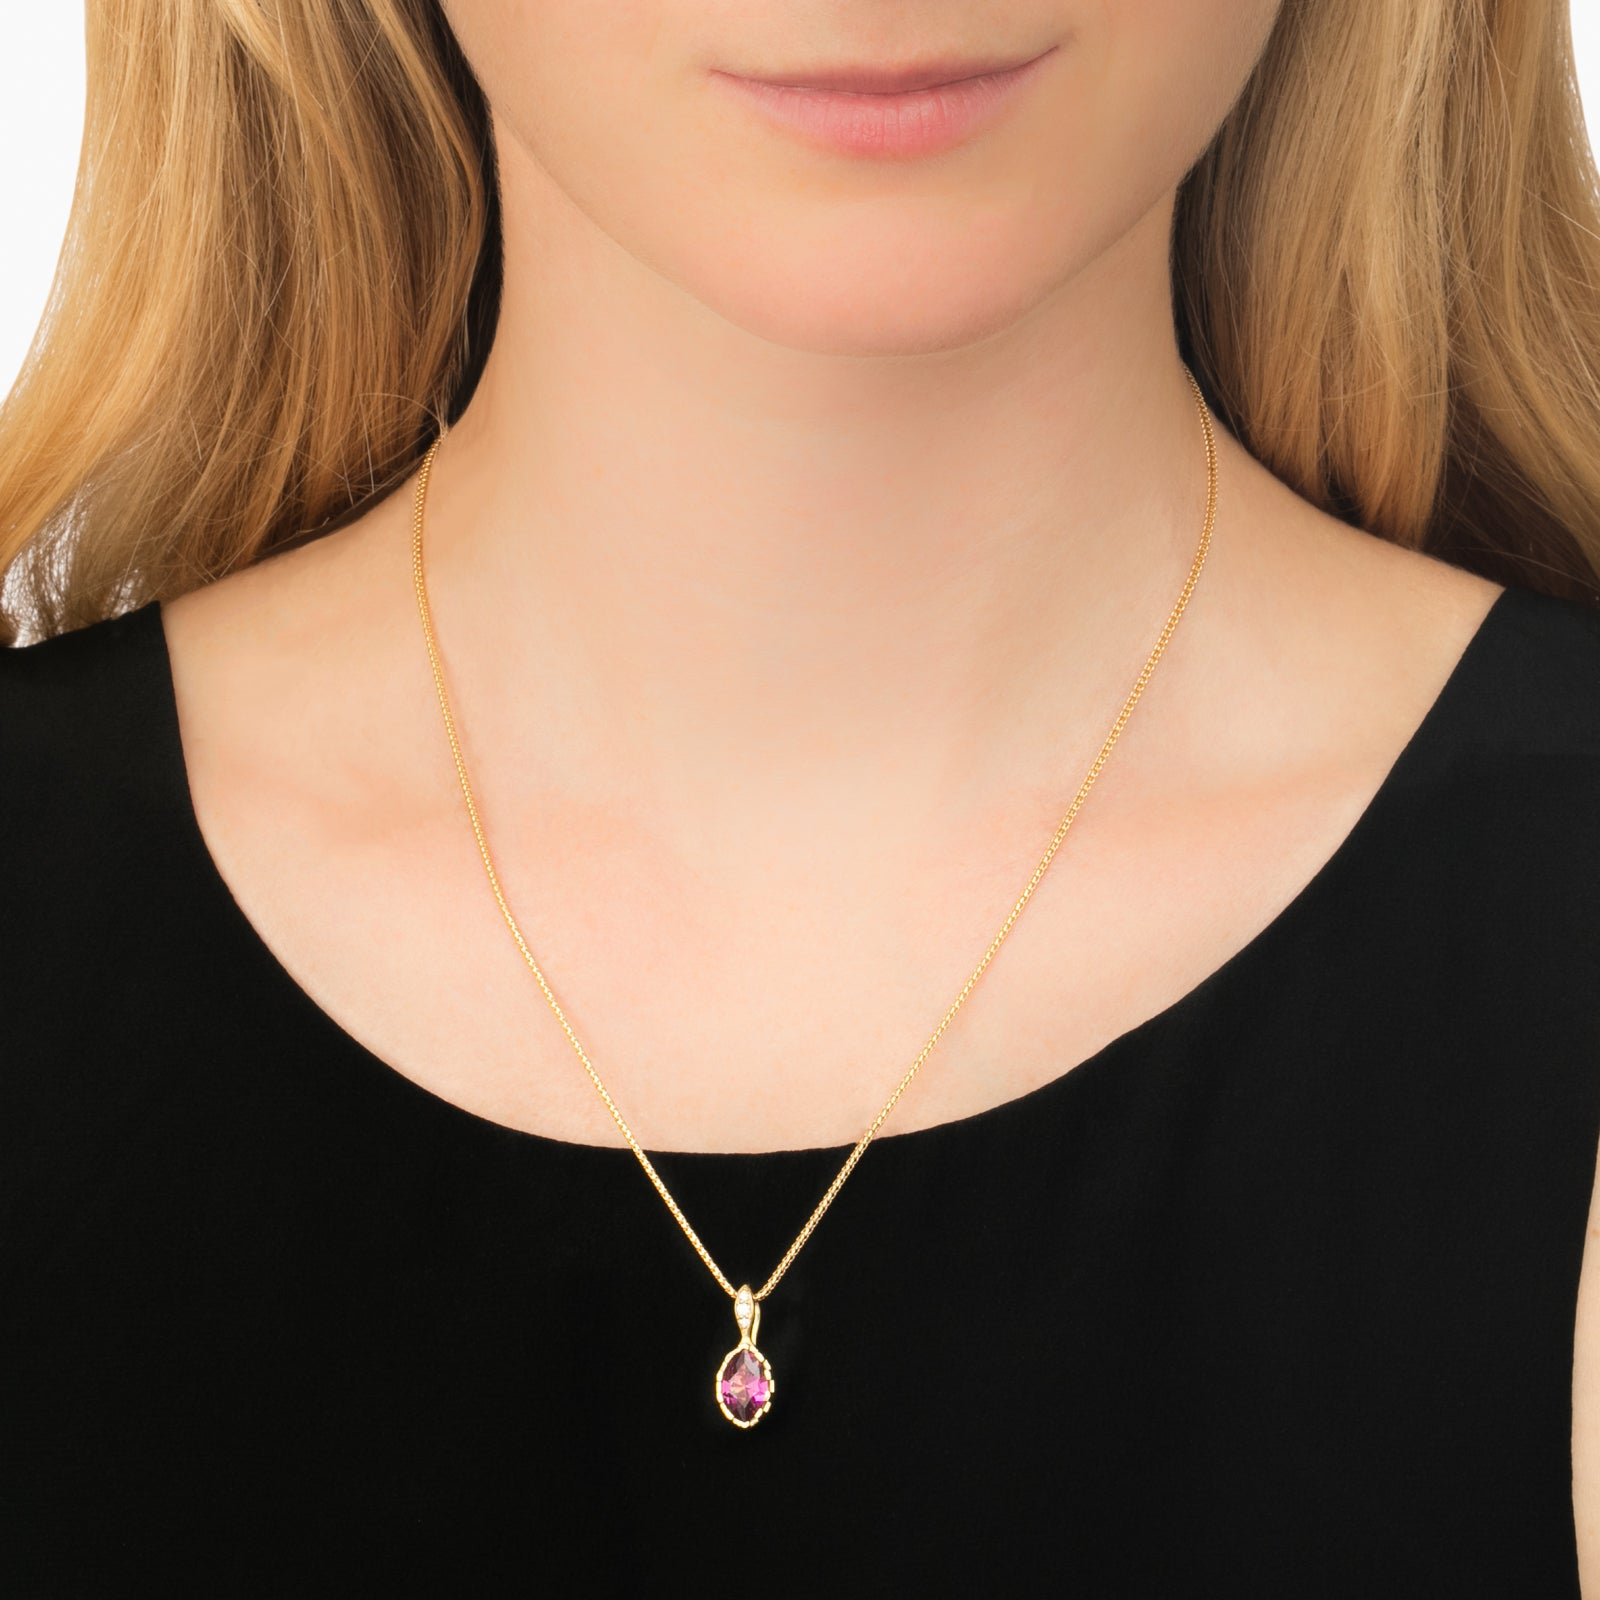 Grape Garnet Genesis Pendant Necklace - ANDY LIF Jewelry - Necklaces | Broken English Jewelry